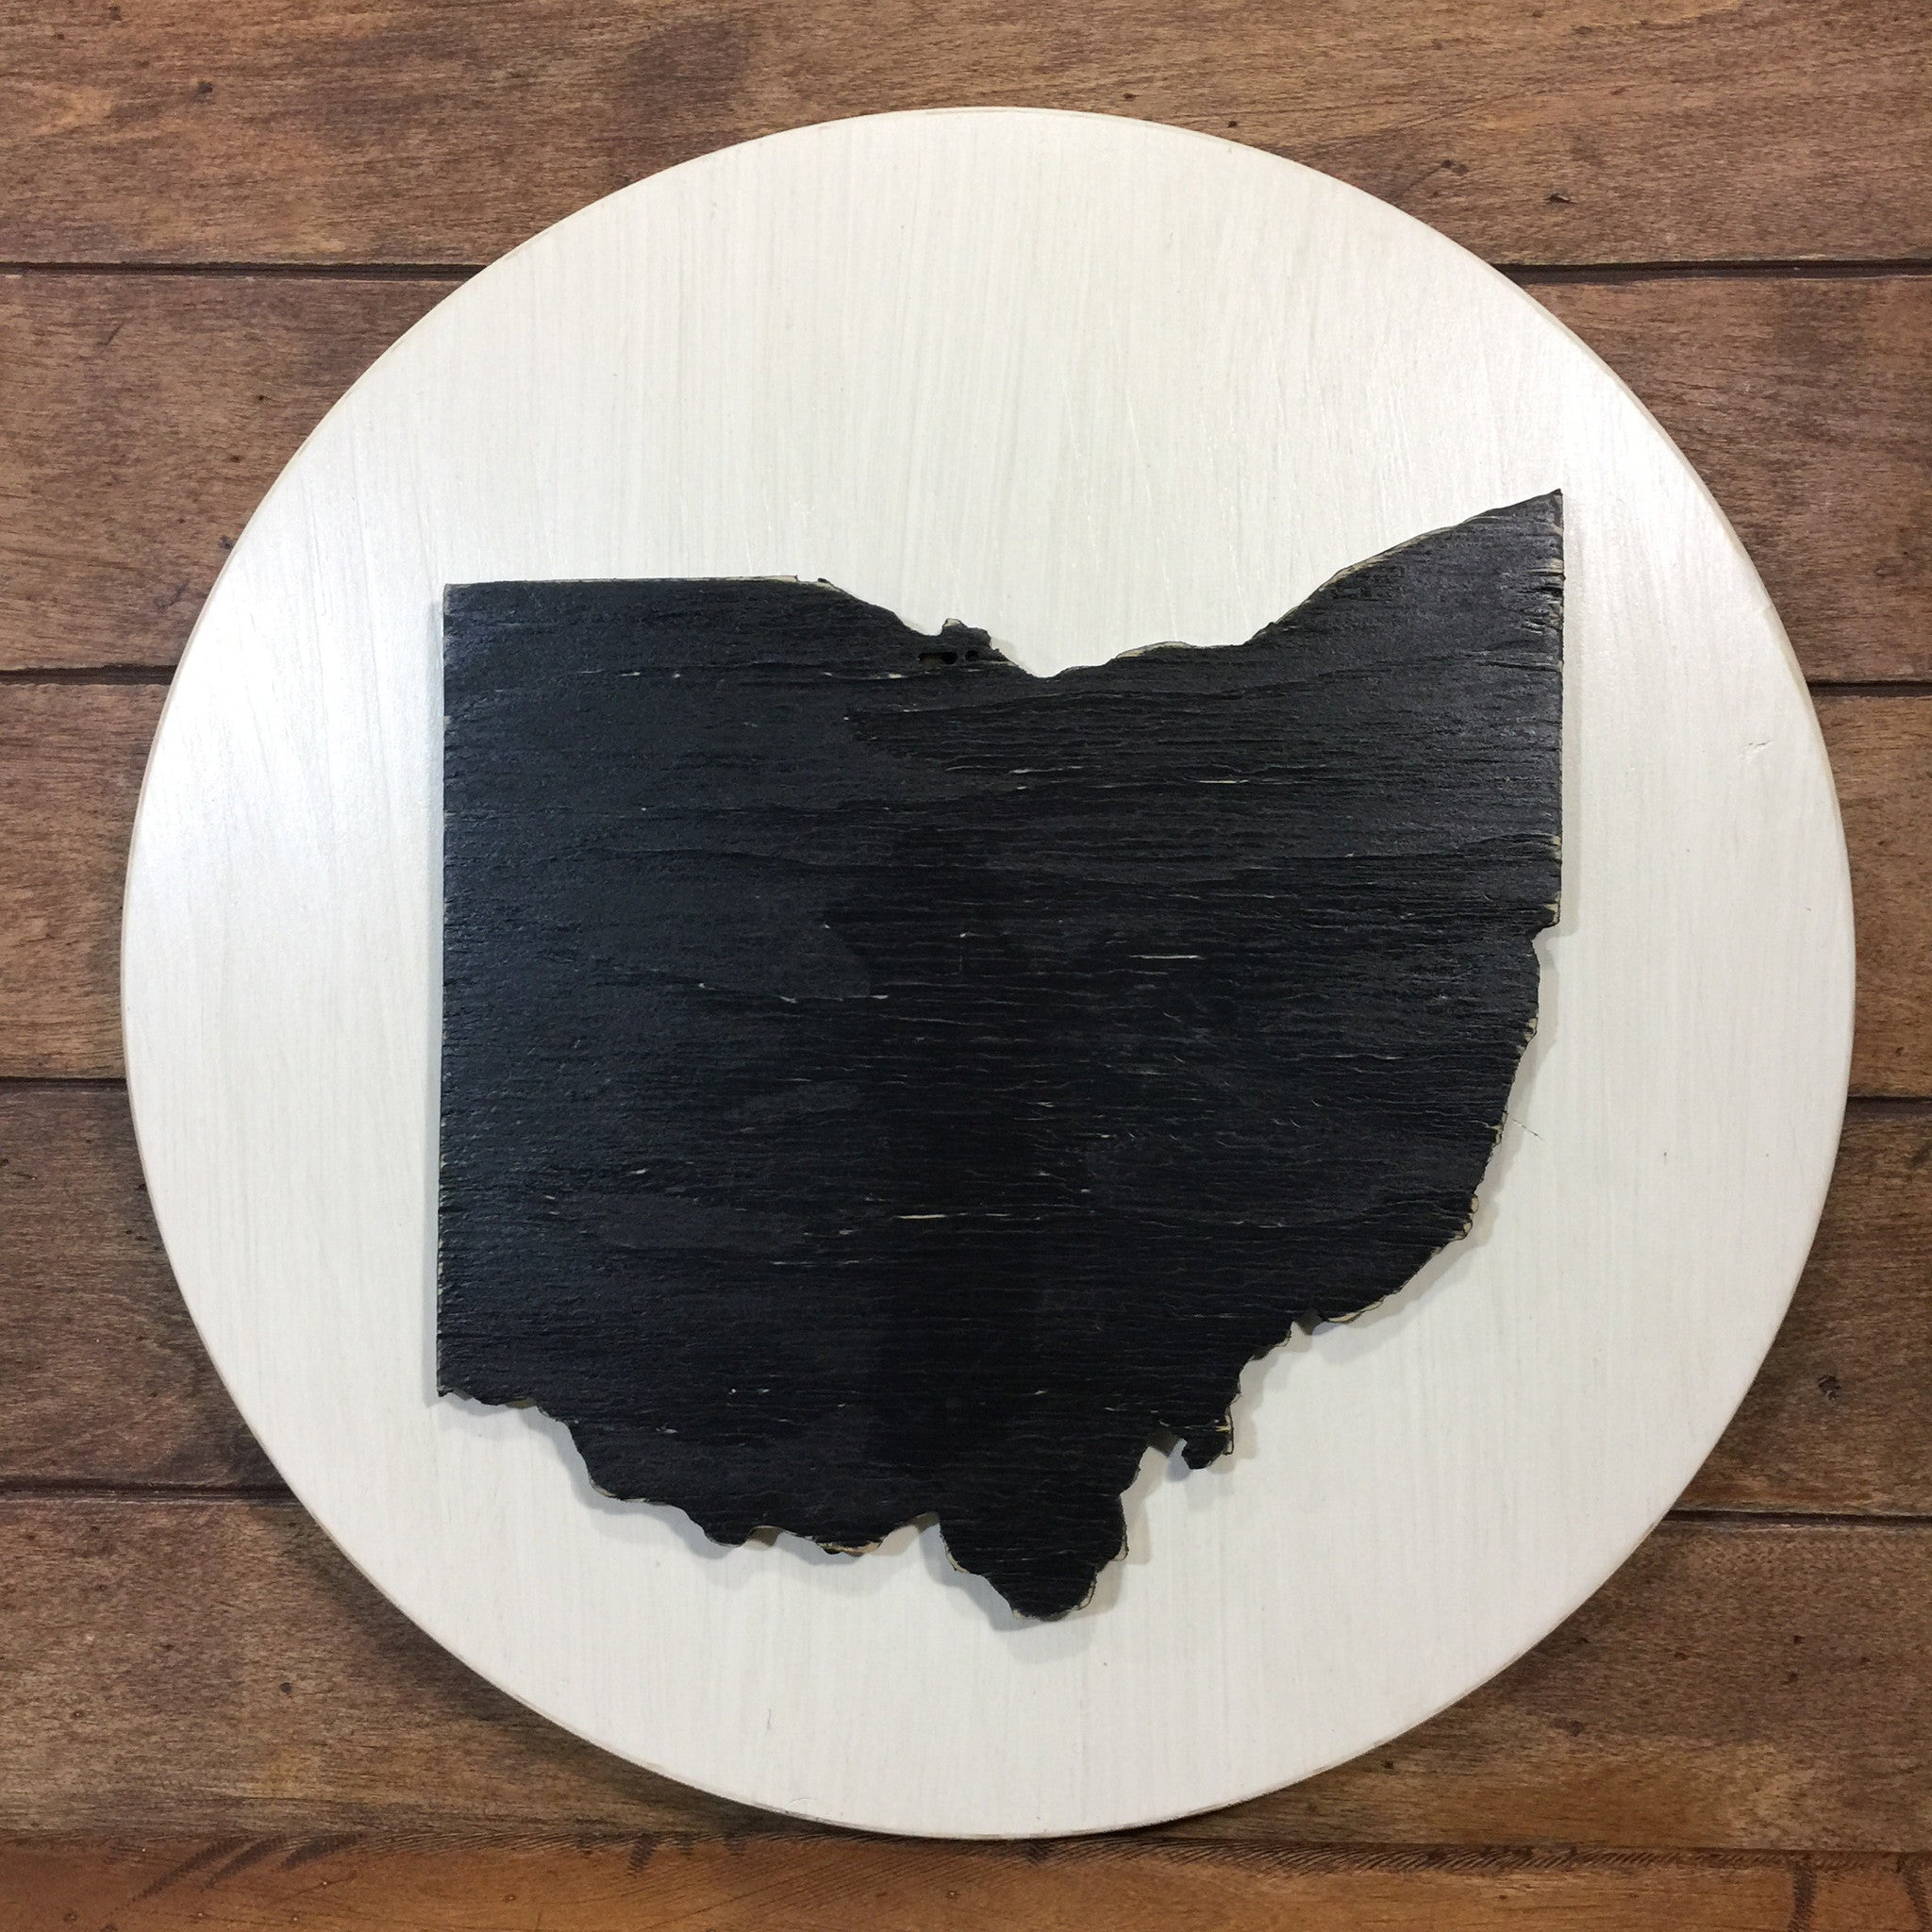 Black Ohio on White Background